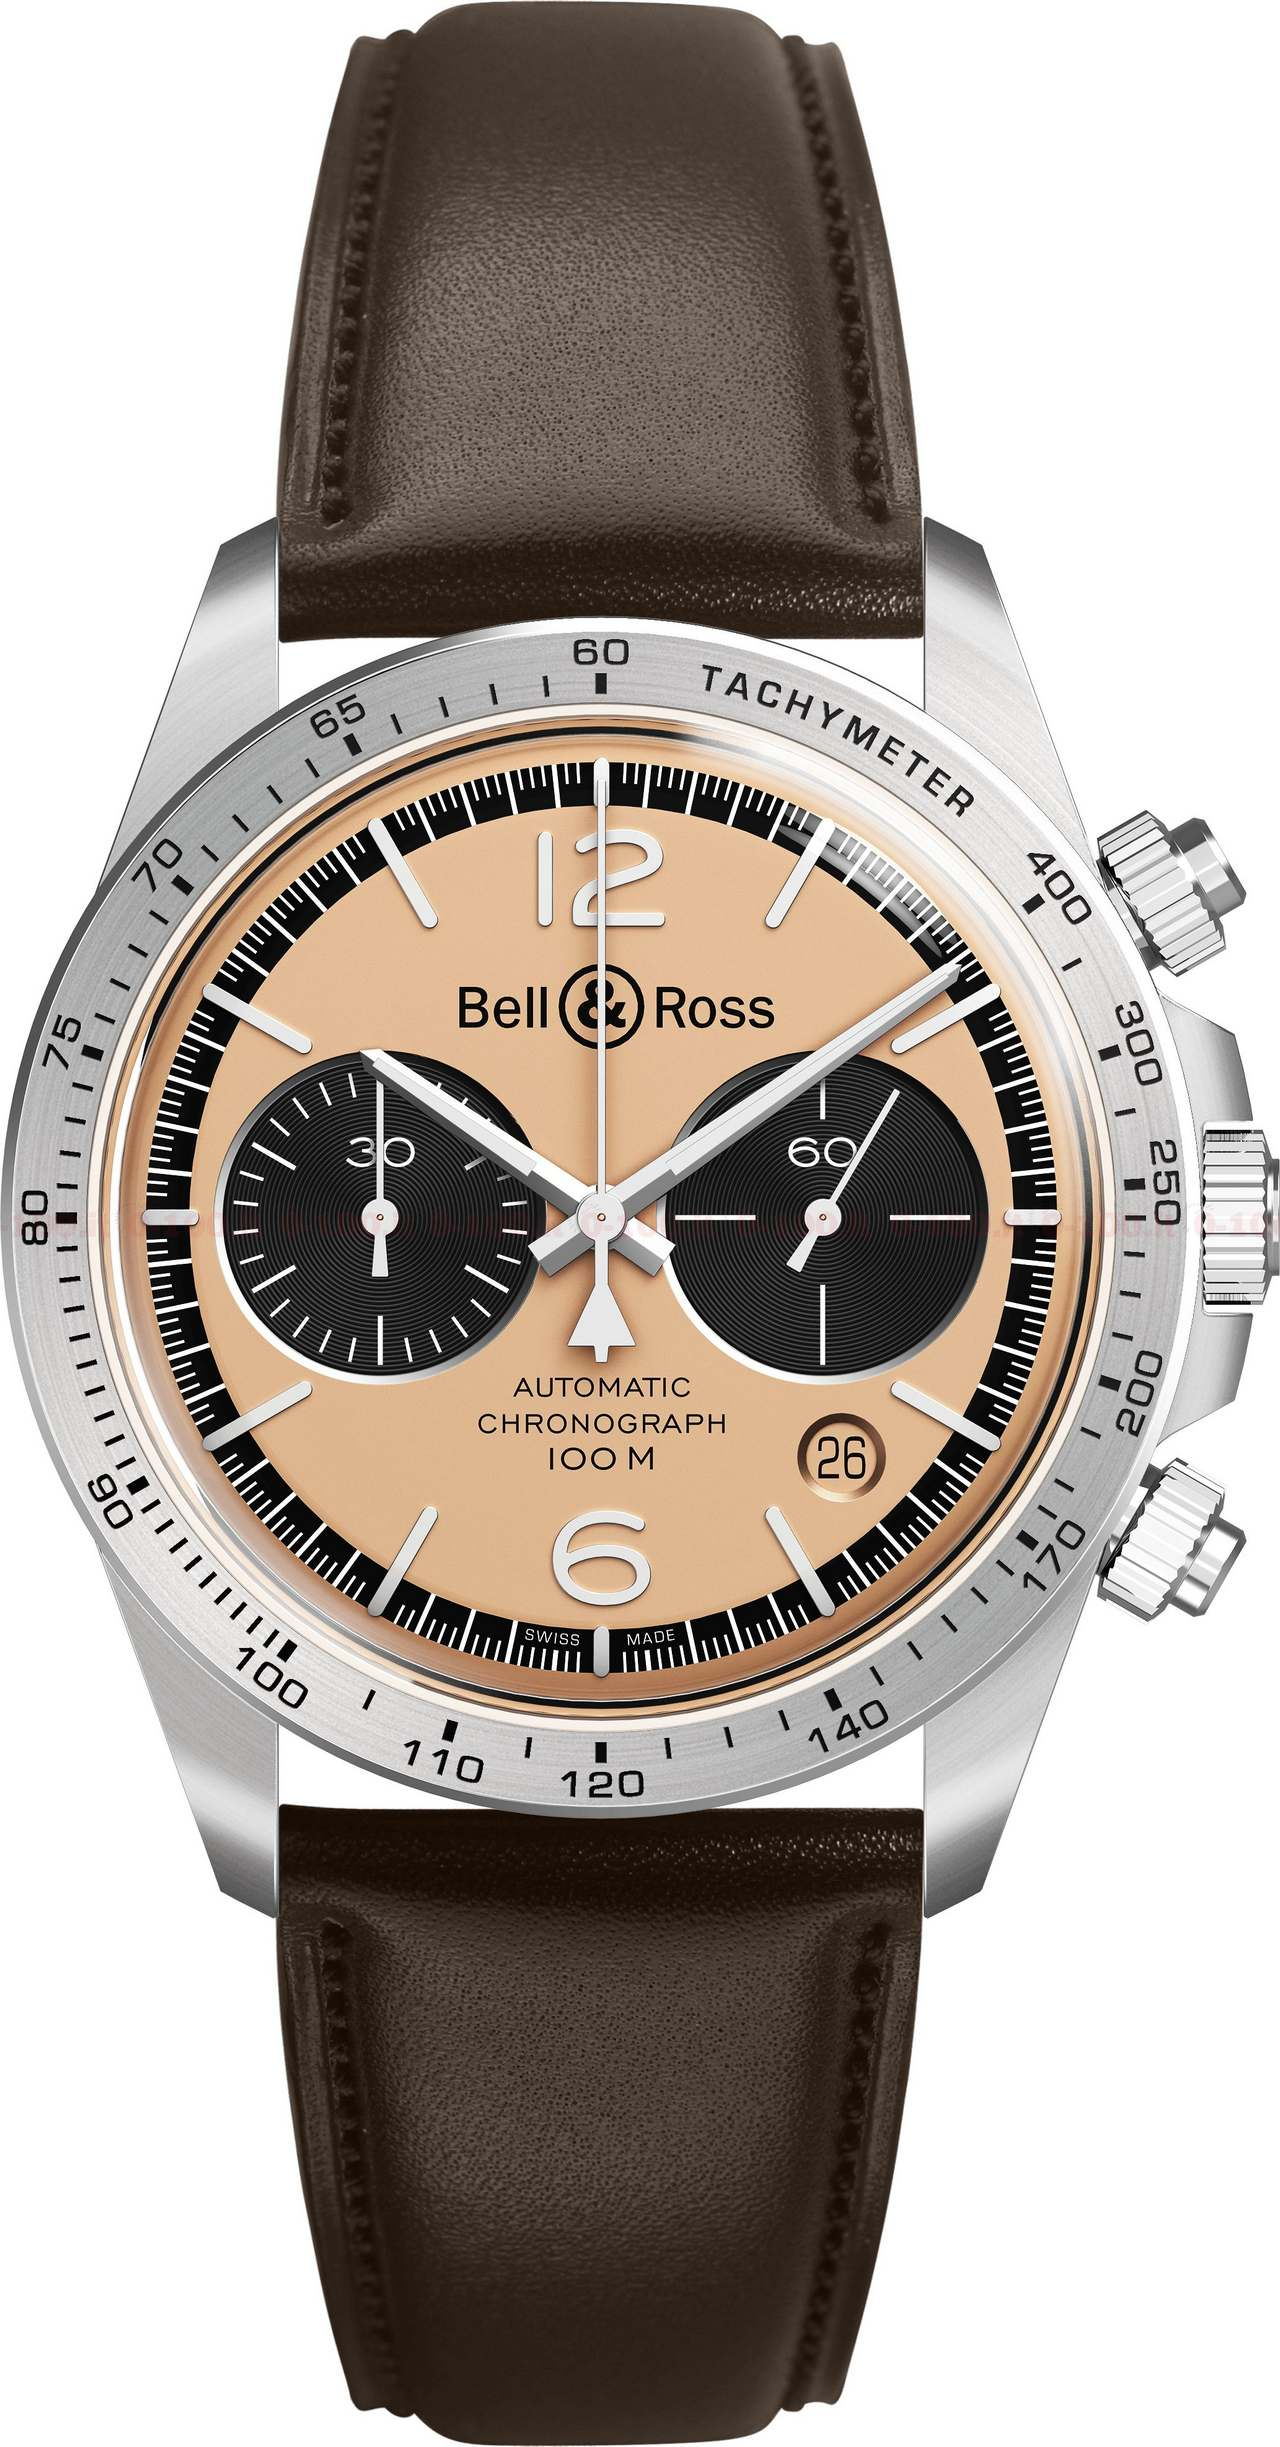 Bell & Ross BR V2-94 Bellytanker Limited Edition_0-100_price_0-1005